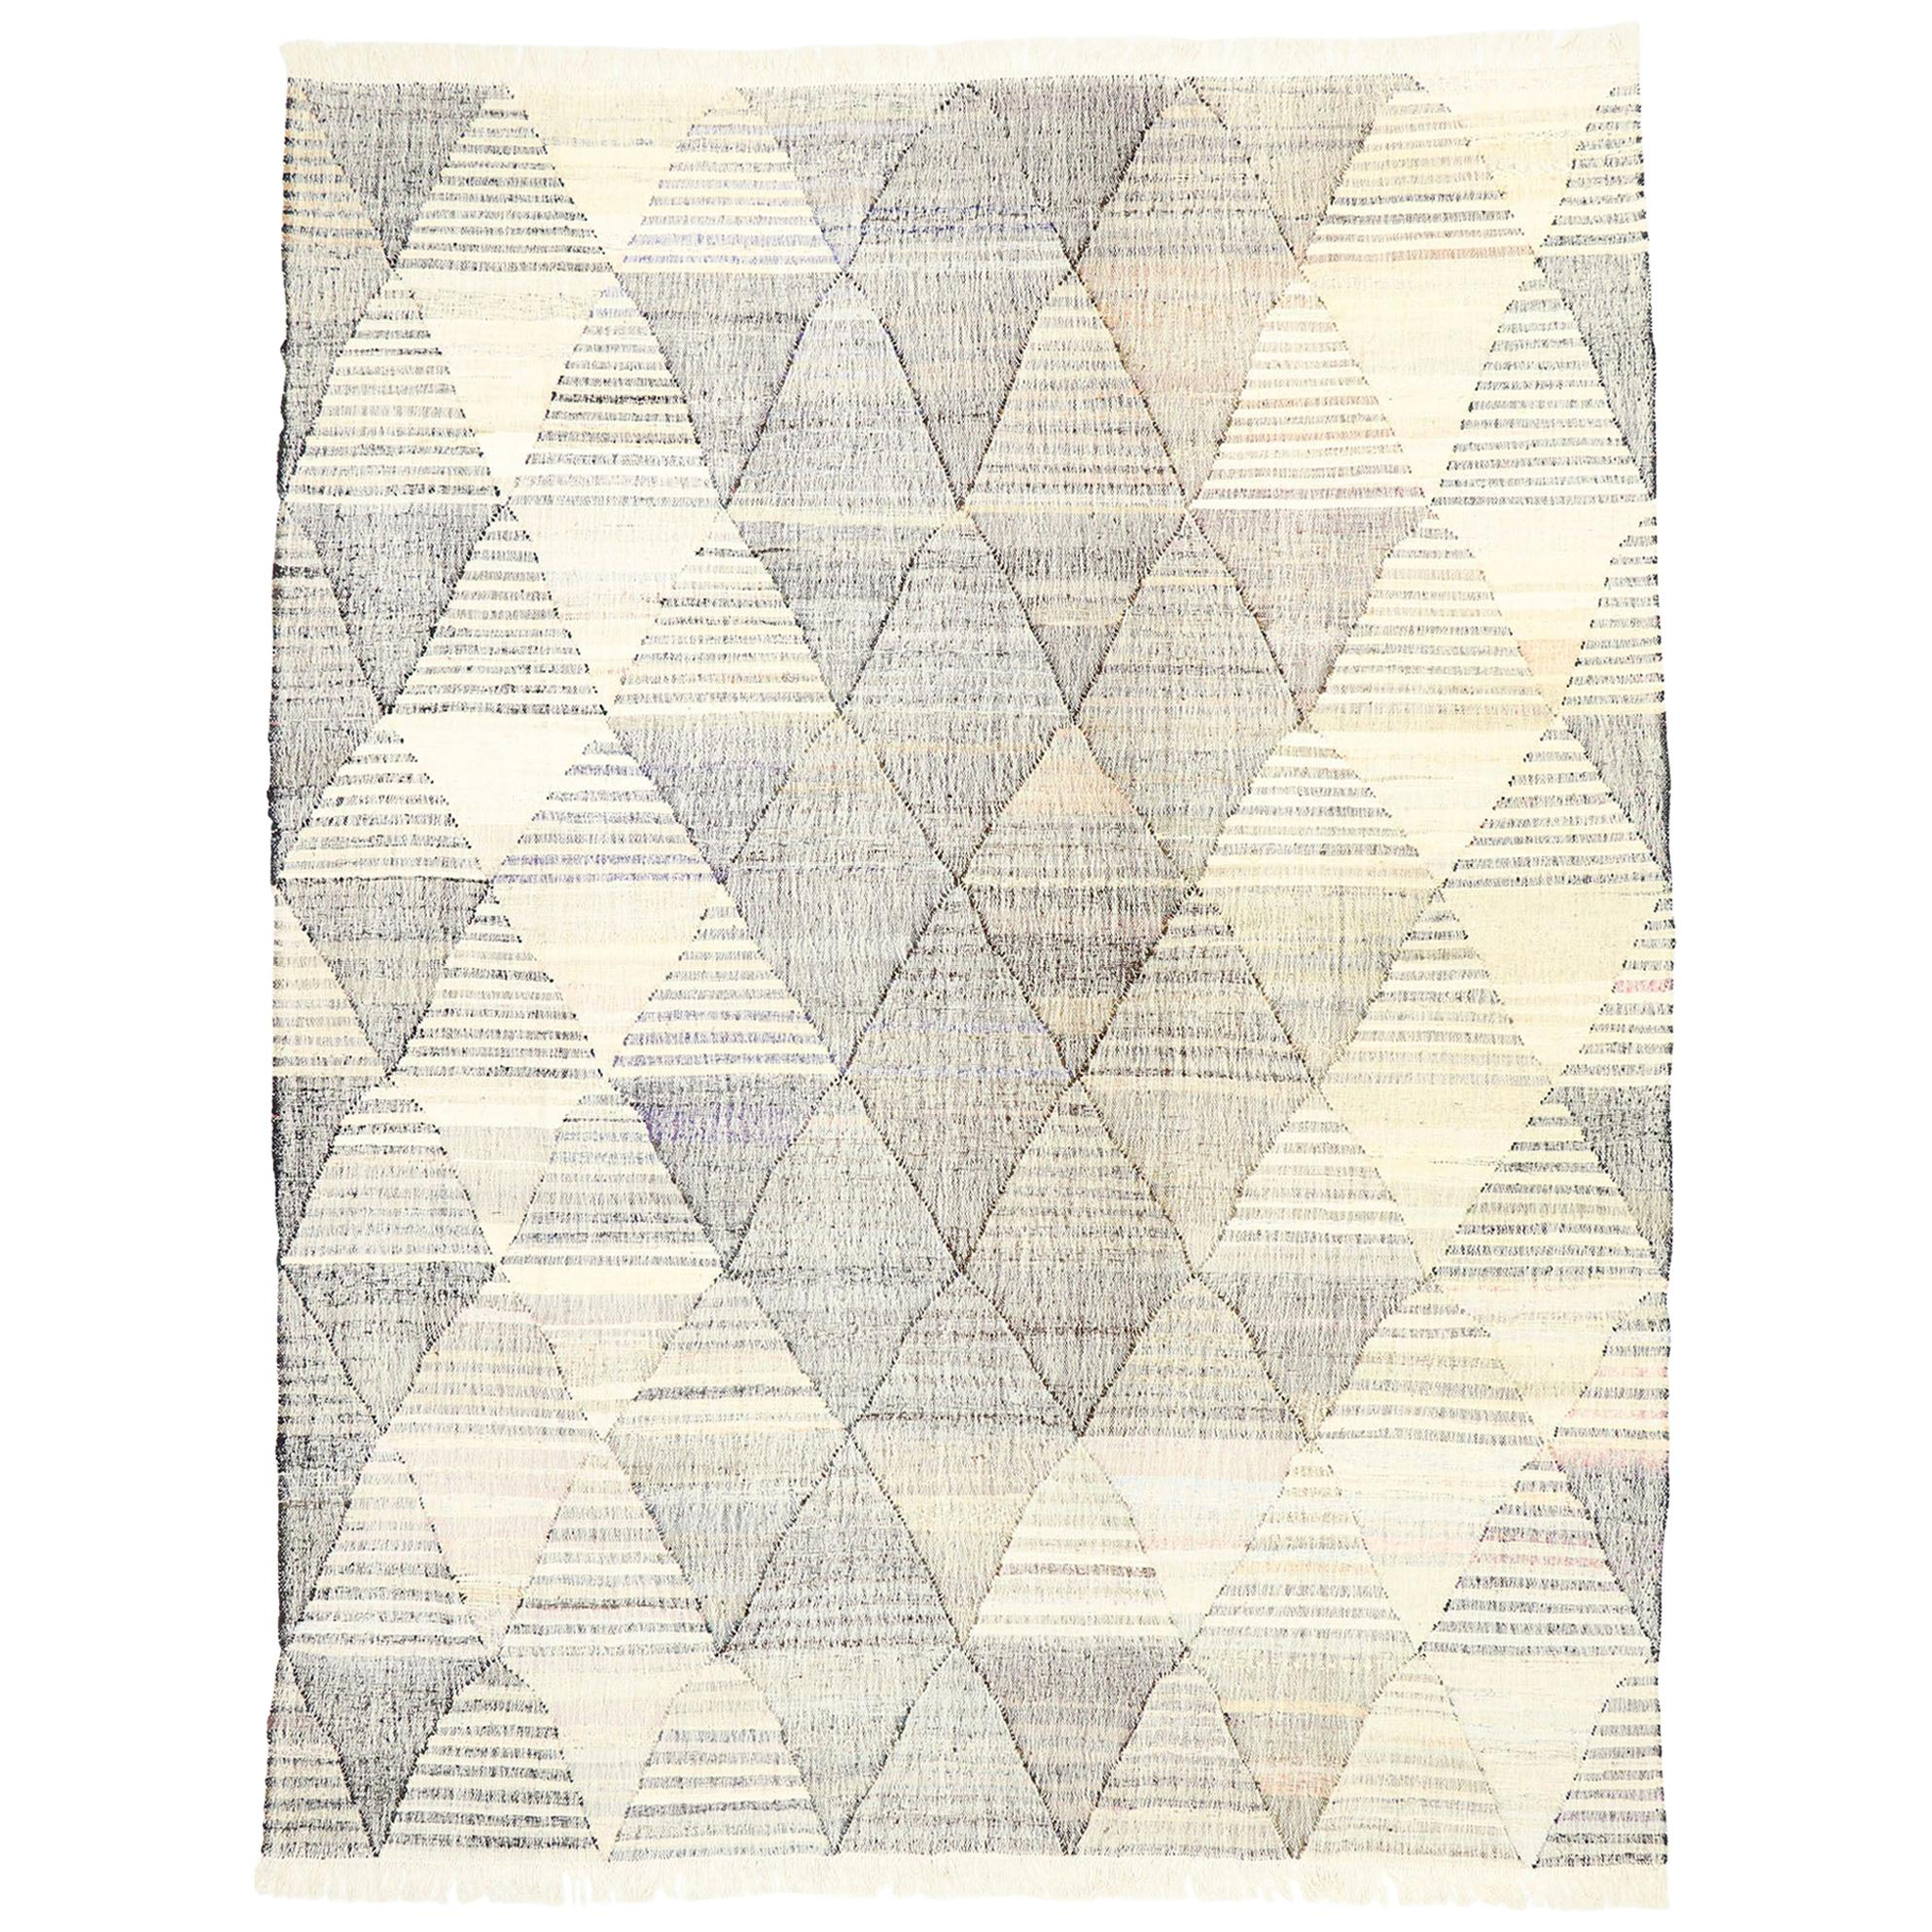 New Handwoven Turkish Kilim Rug with Triangle Pattern